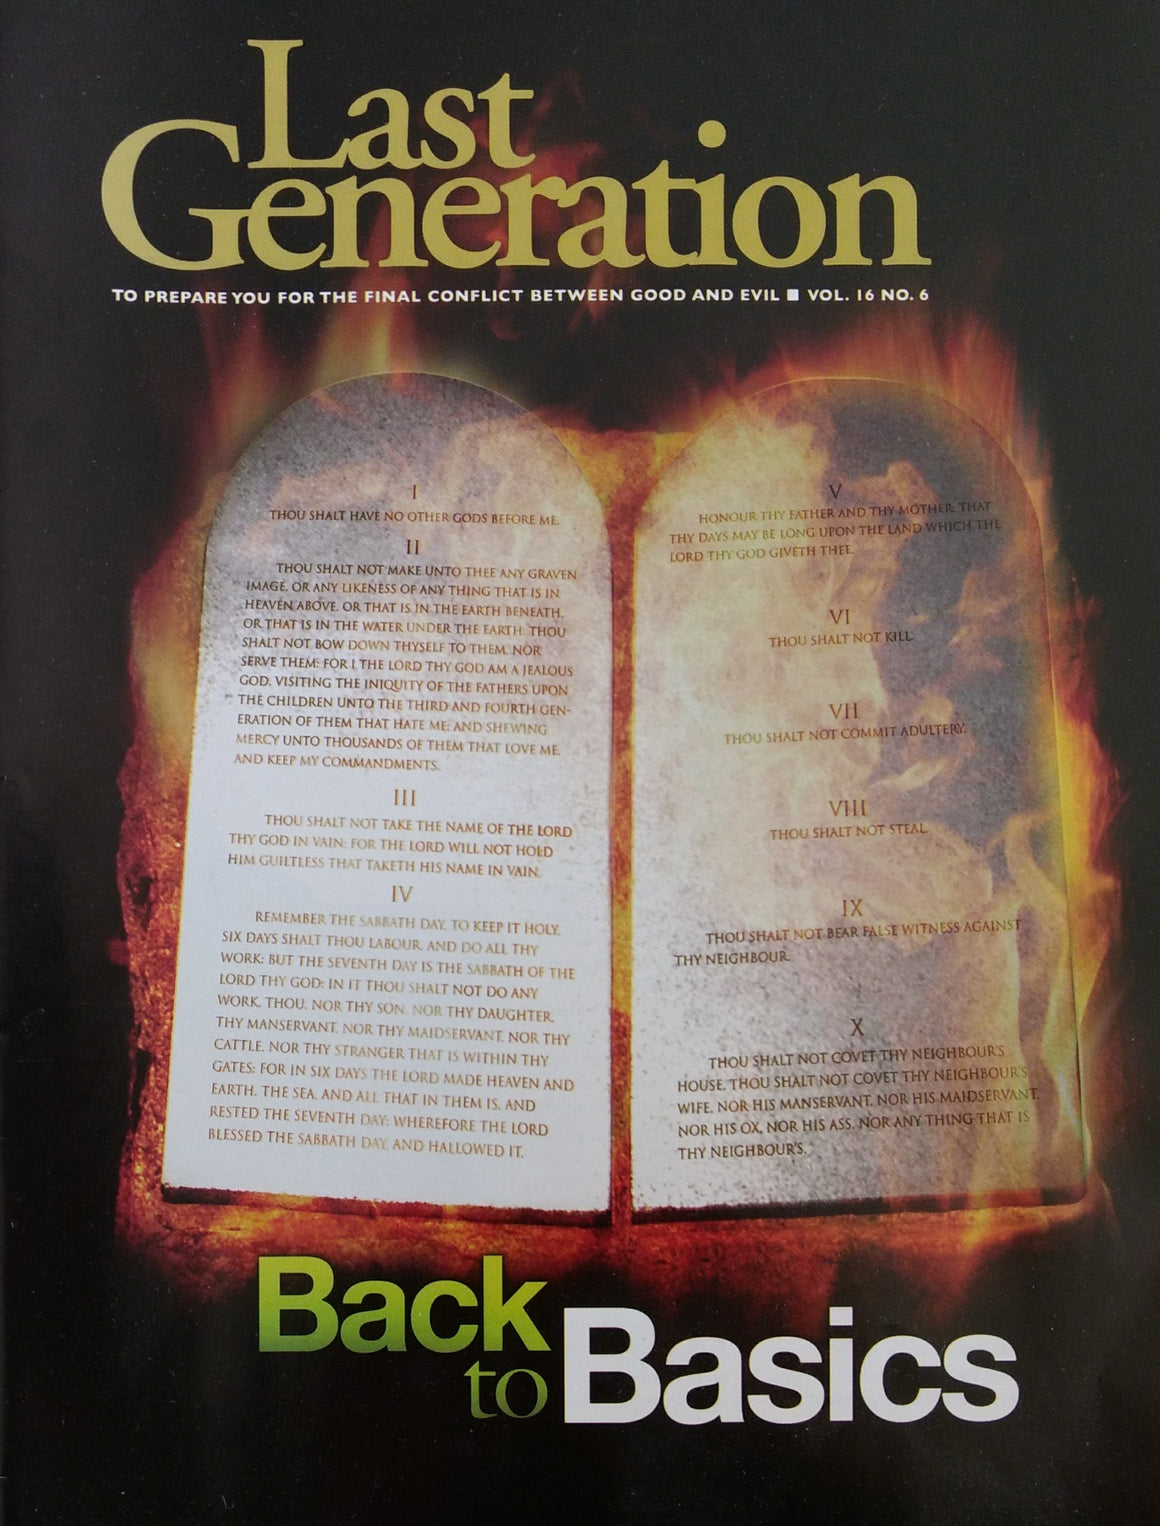 Last Generation: Back to Basics Vol. 16 No. 6